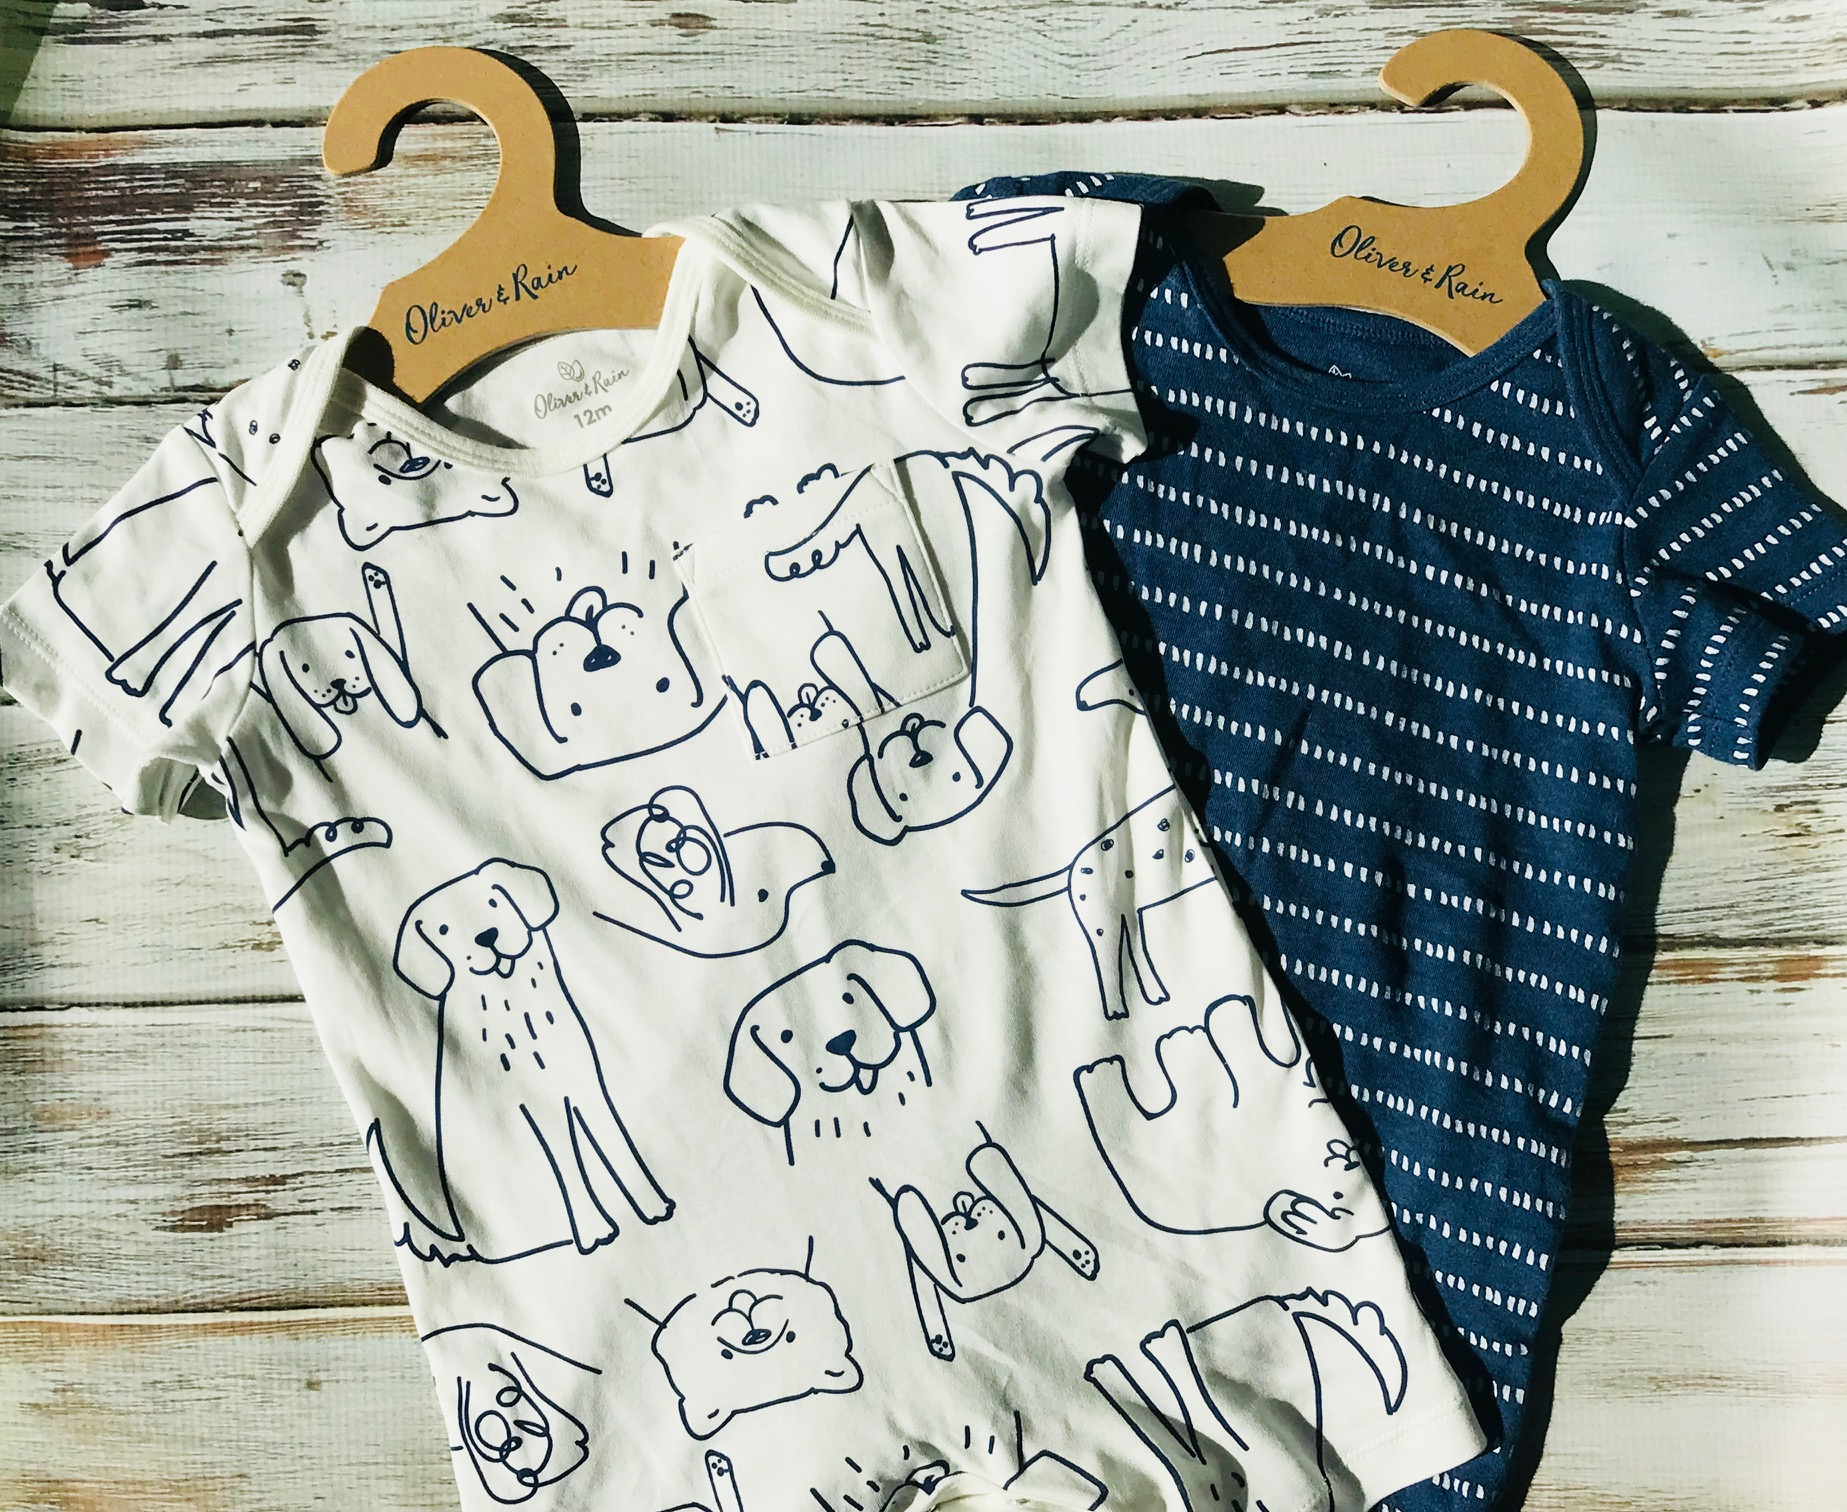 Oliver & Rain Organic Kids Clothes, Oliver & Rain, Baby Clothing, Kids Clothing